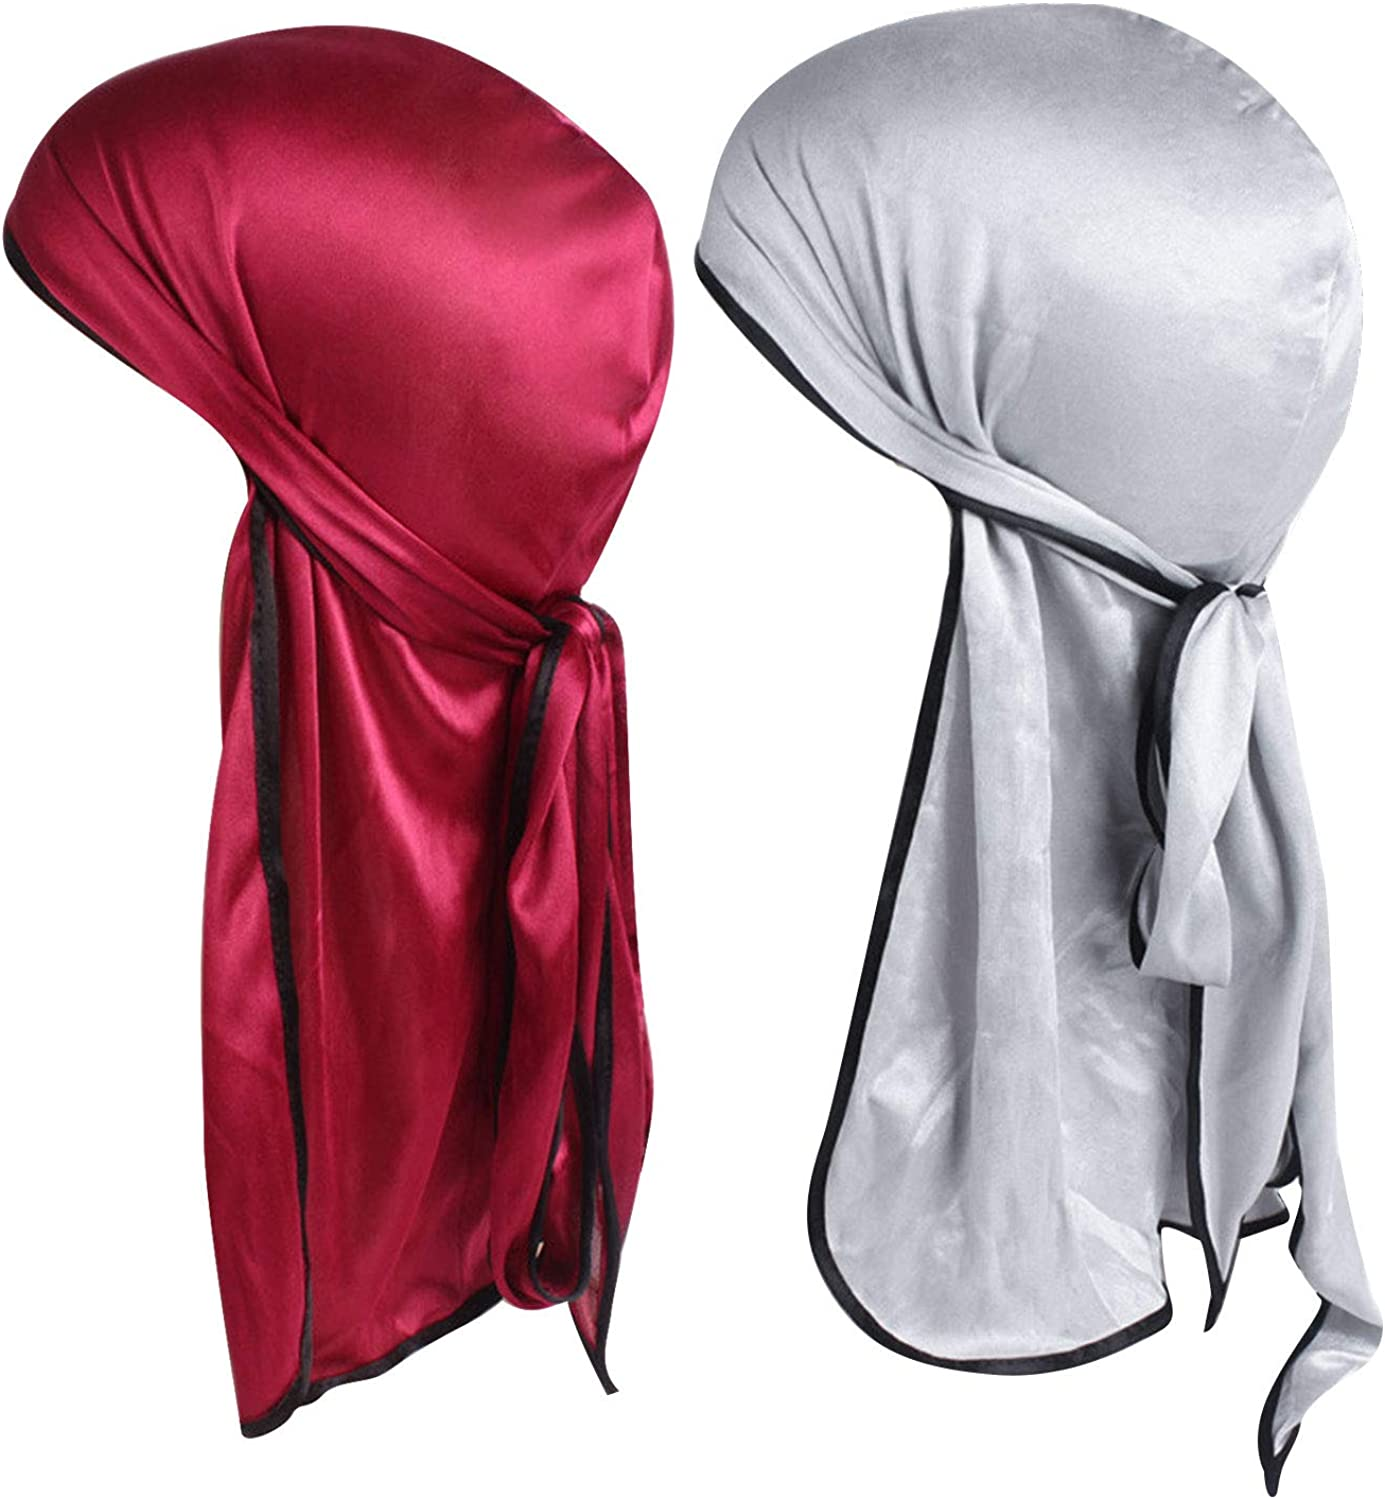 AURANSO 2 Pcs Silky Durag Men Soft Silk Durags 360 Waves Headwraps Unisex Cap Bandana Turban Hat with Long Tails and Wide Straps for Kids Women